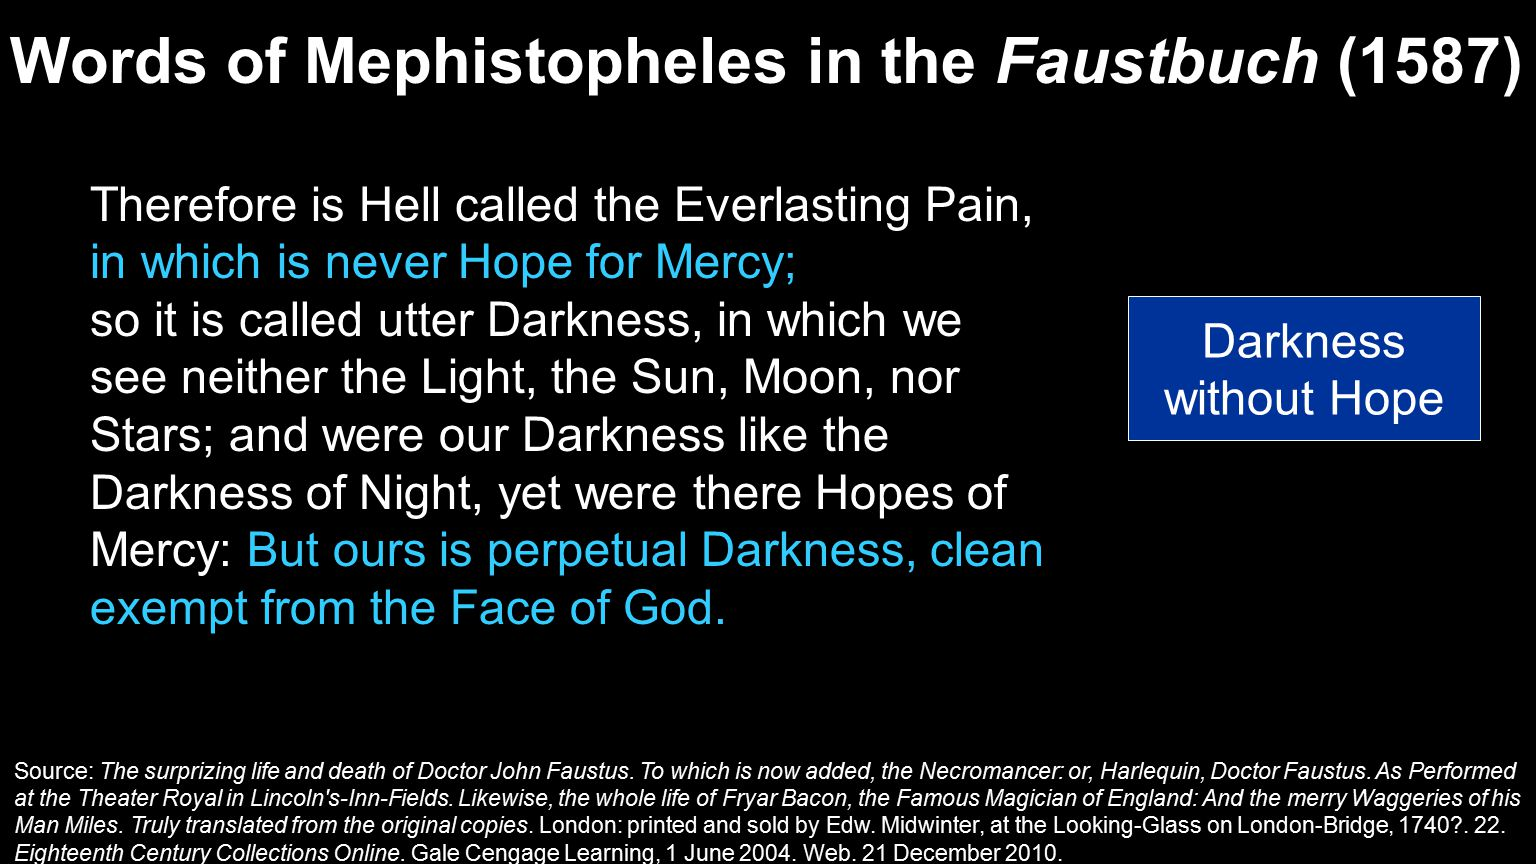 Therefore is Hell called the Everlasting Pain, in which is never Hope for Mercy; so it is called utter Darkness, in which we see neither the Light, the Sun, Moon, nor Stars; and were our Darkness like the Darkness of Night, yet were there Hopes of Mercy: But ours is perpetual Darkness, clean exempt from the Face of God.